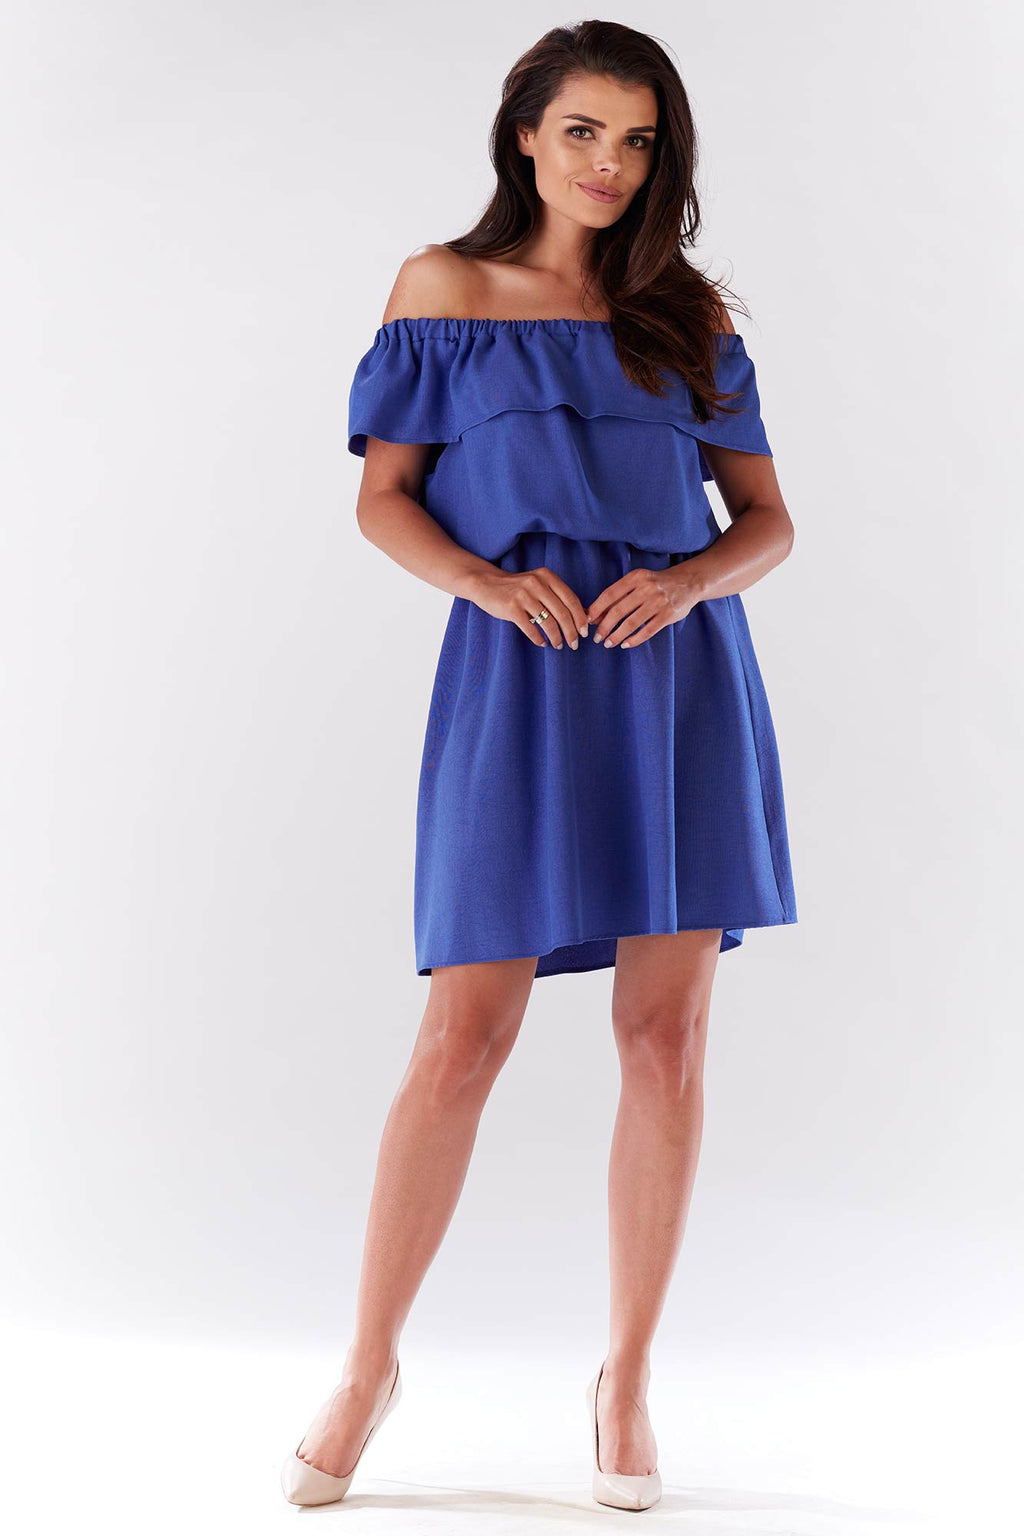 Mini Blue Off The Shoulder Linen Dress With Elastic Waist - So Chic Boutique